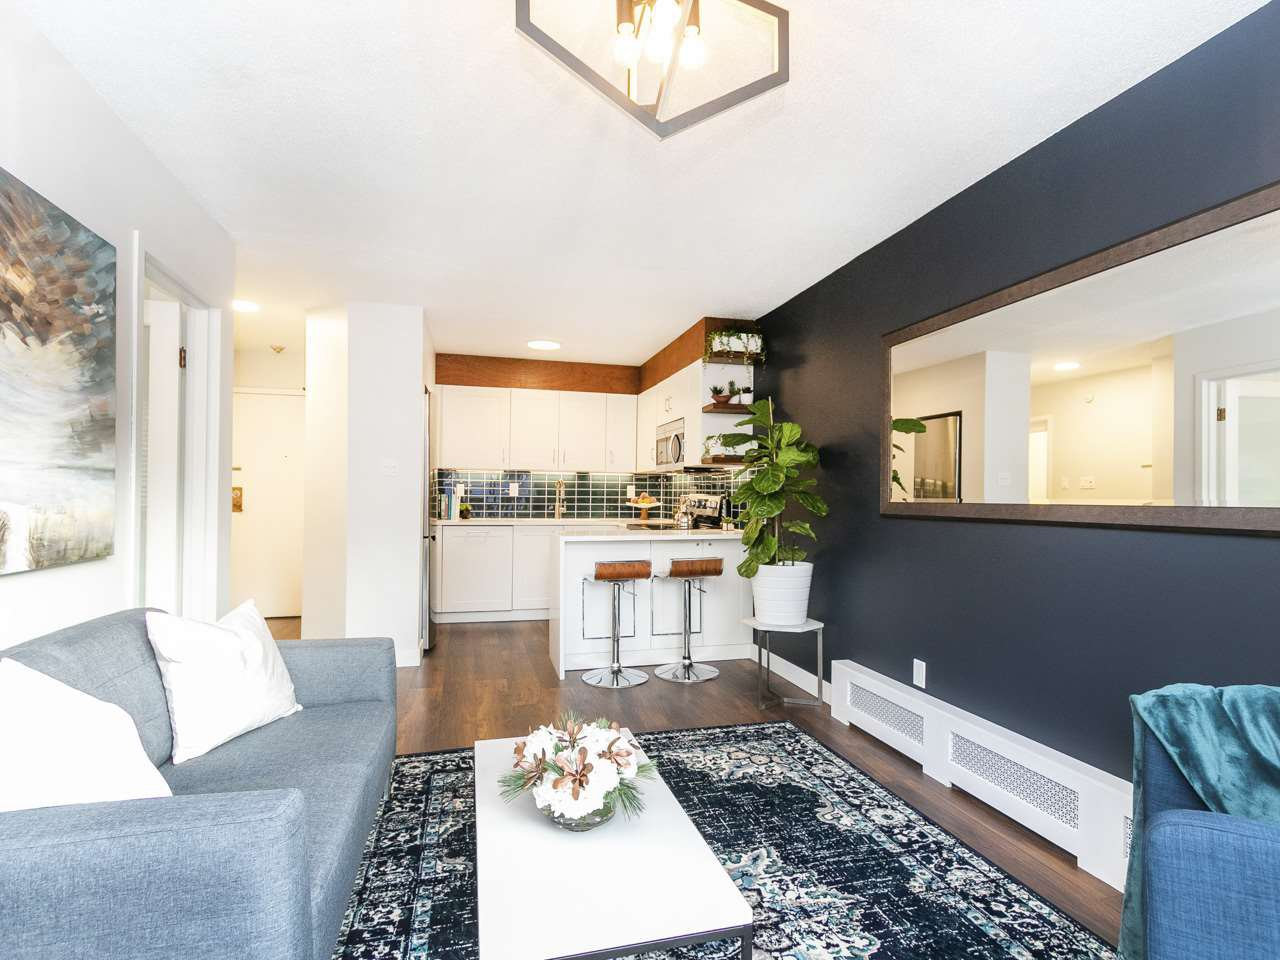 Main Photo: 302 930 E 7TH AVENUE in Vancouver: Mount Pleasant VE Condo for sale (Vancouver East)  : MLS®# R2338947